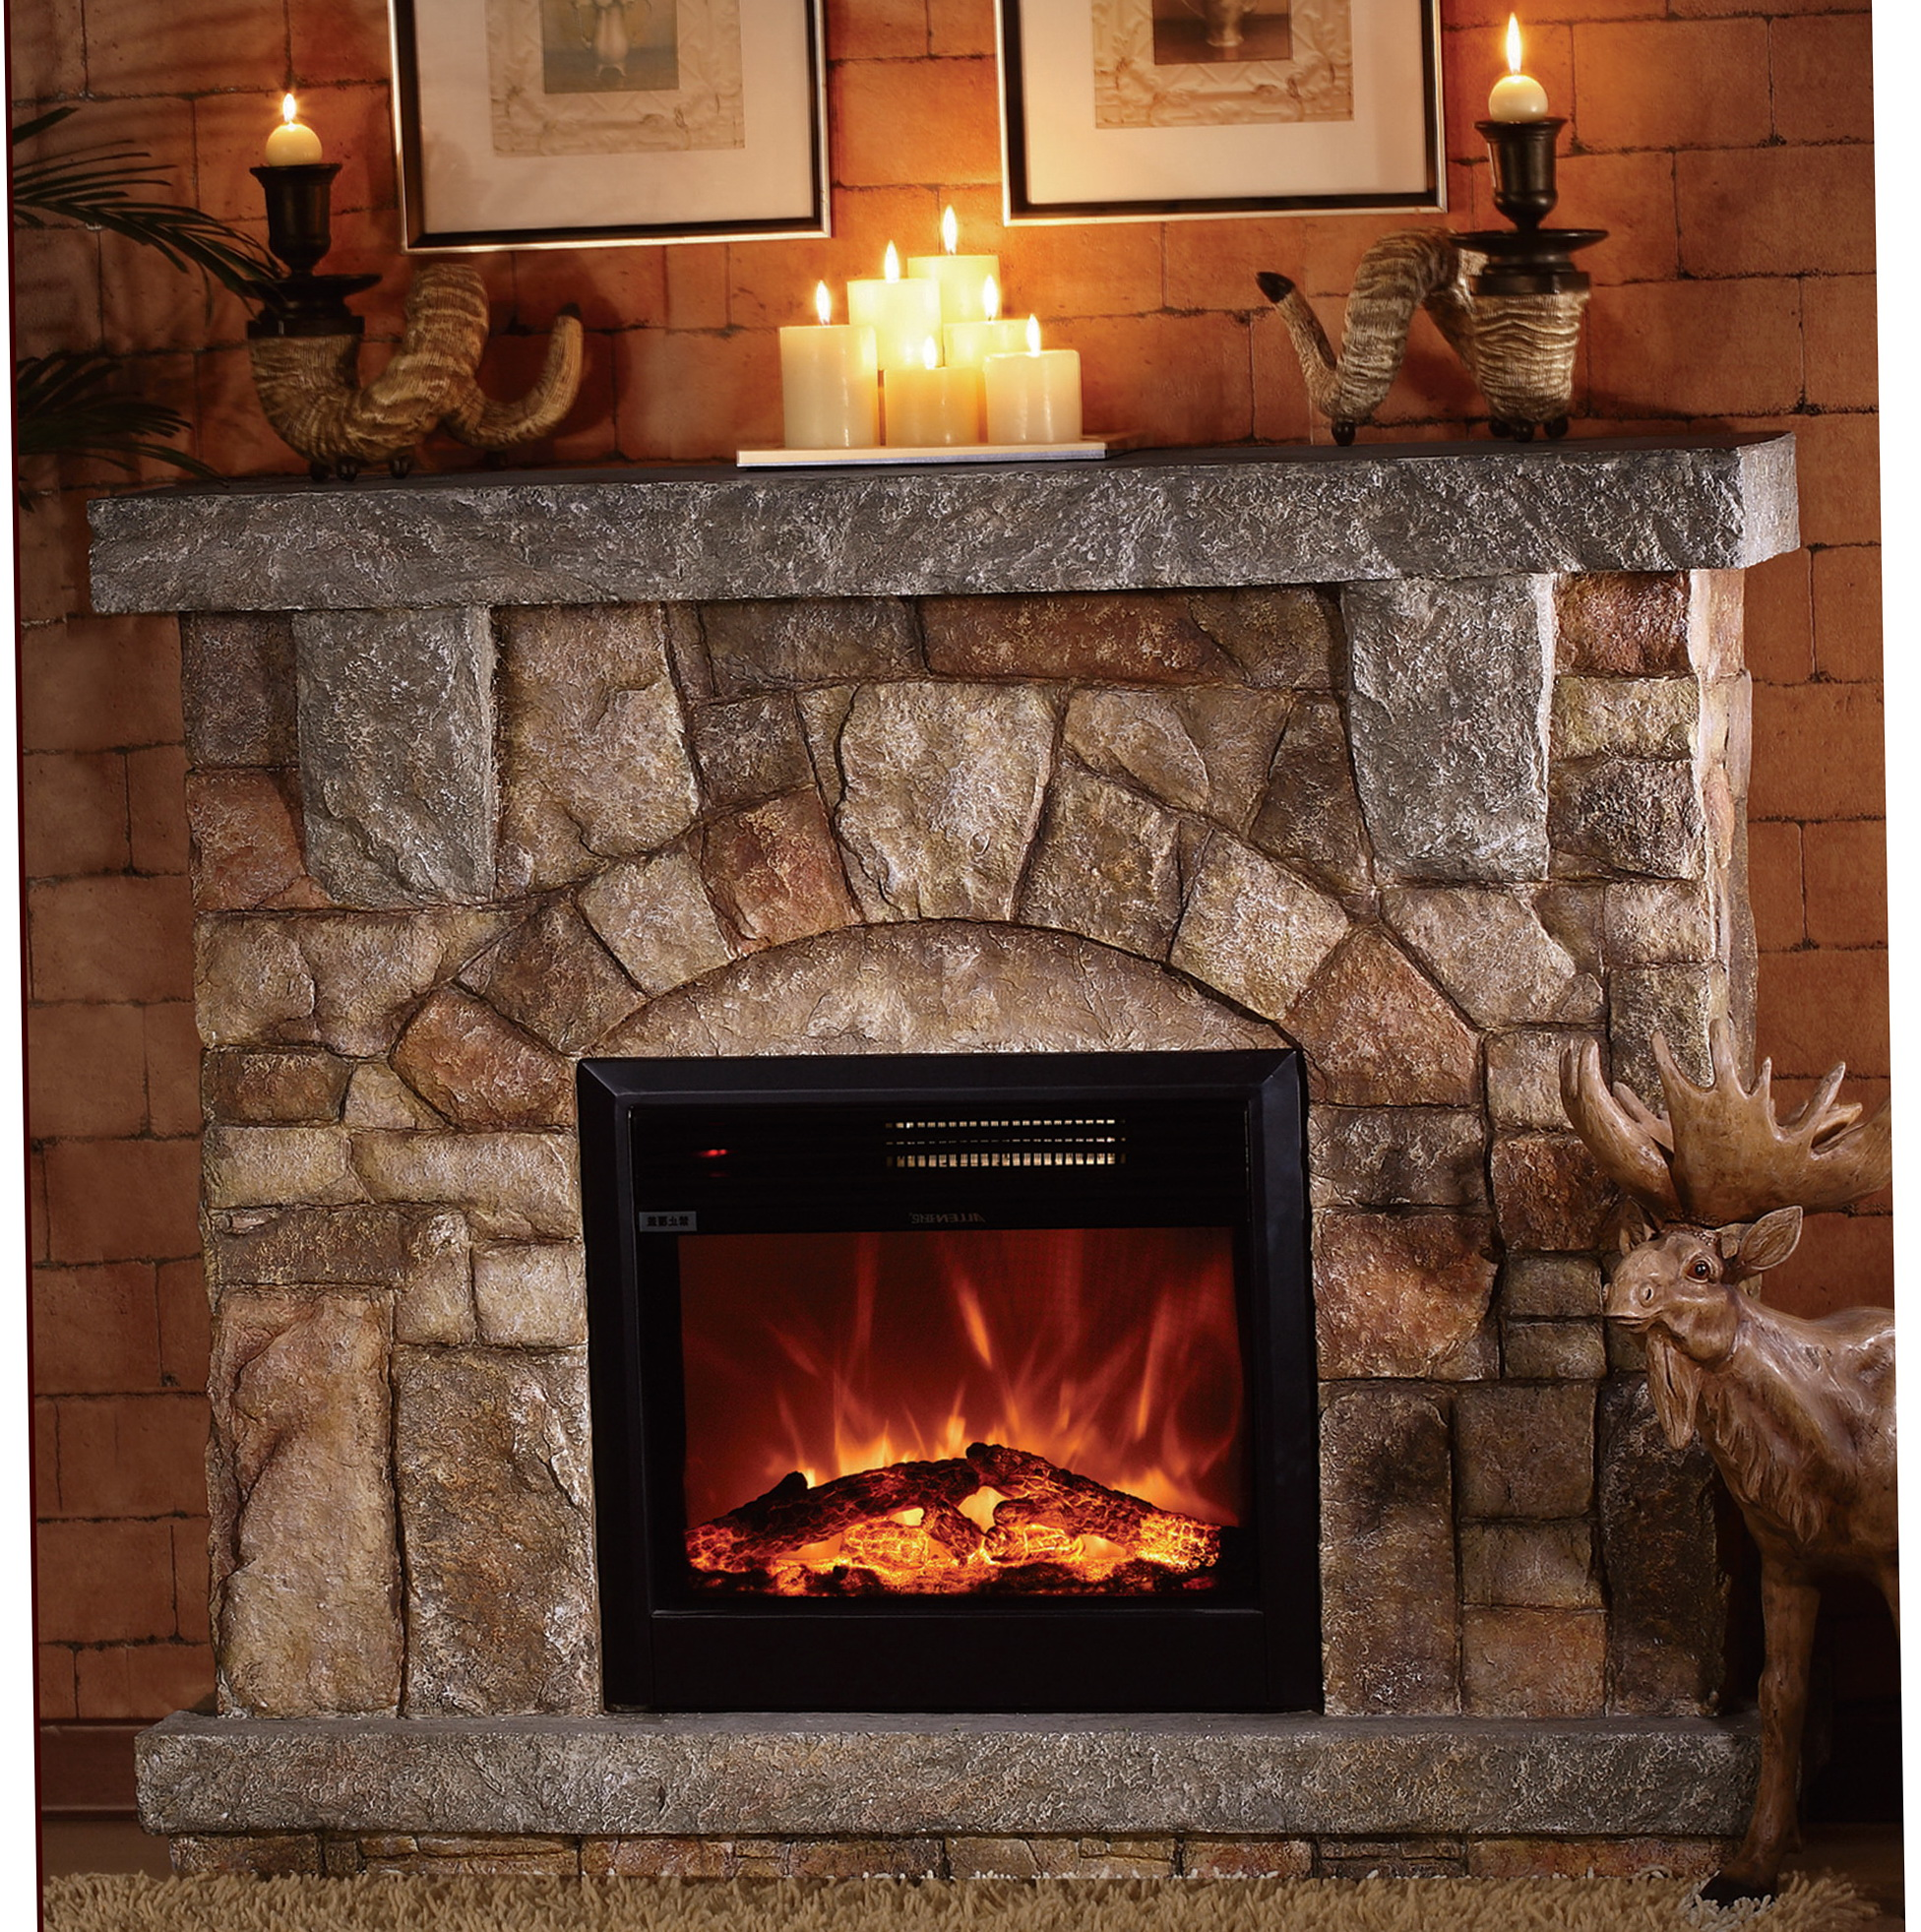 Stone electric fireplace for modern rustic home designs homesfeed - Images of stone fireplaces ...